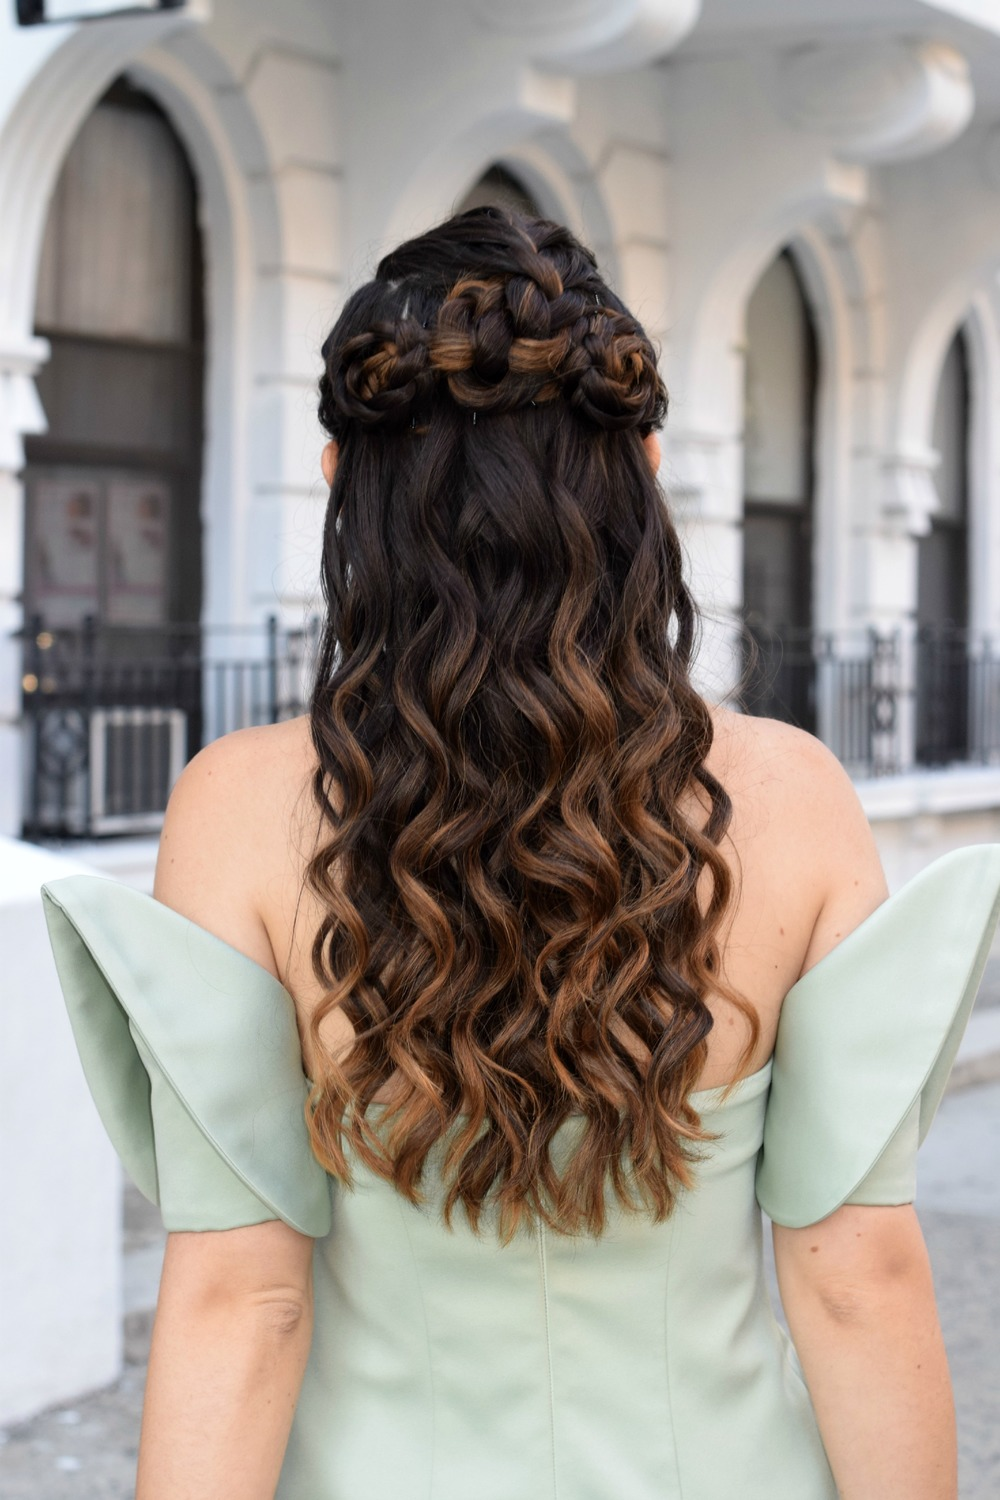 Sage Terno Cocktail Dress Mestiza NY Louboutins & Love Fashion Blog Esther Santer Street Style Blogger NYC Photoshoot Earrings Steve Madden Heels Pumps Hair Brunette Model Girl Women Trendy Outfit OOTD Look Inspiration Inspo Beauty Shop Pretty Braids.JPG